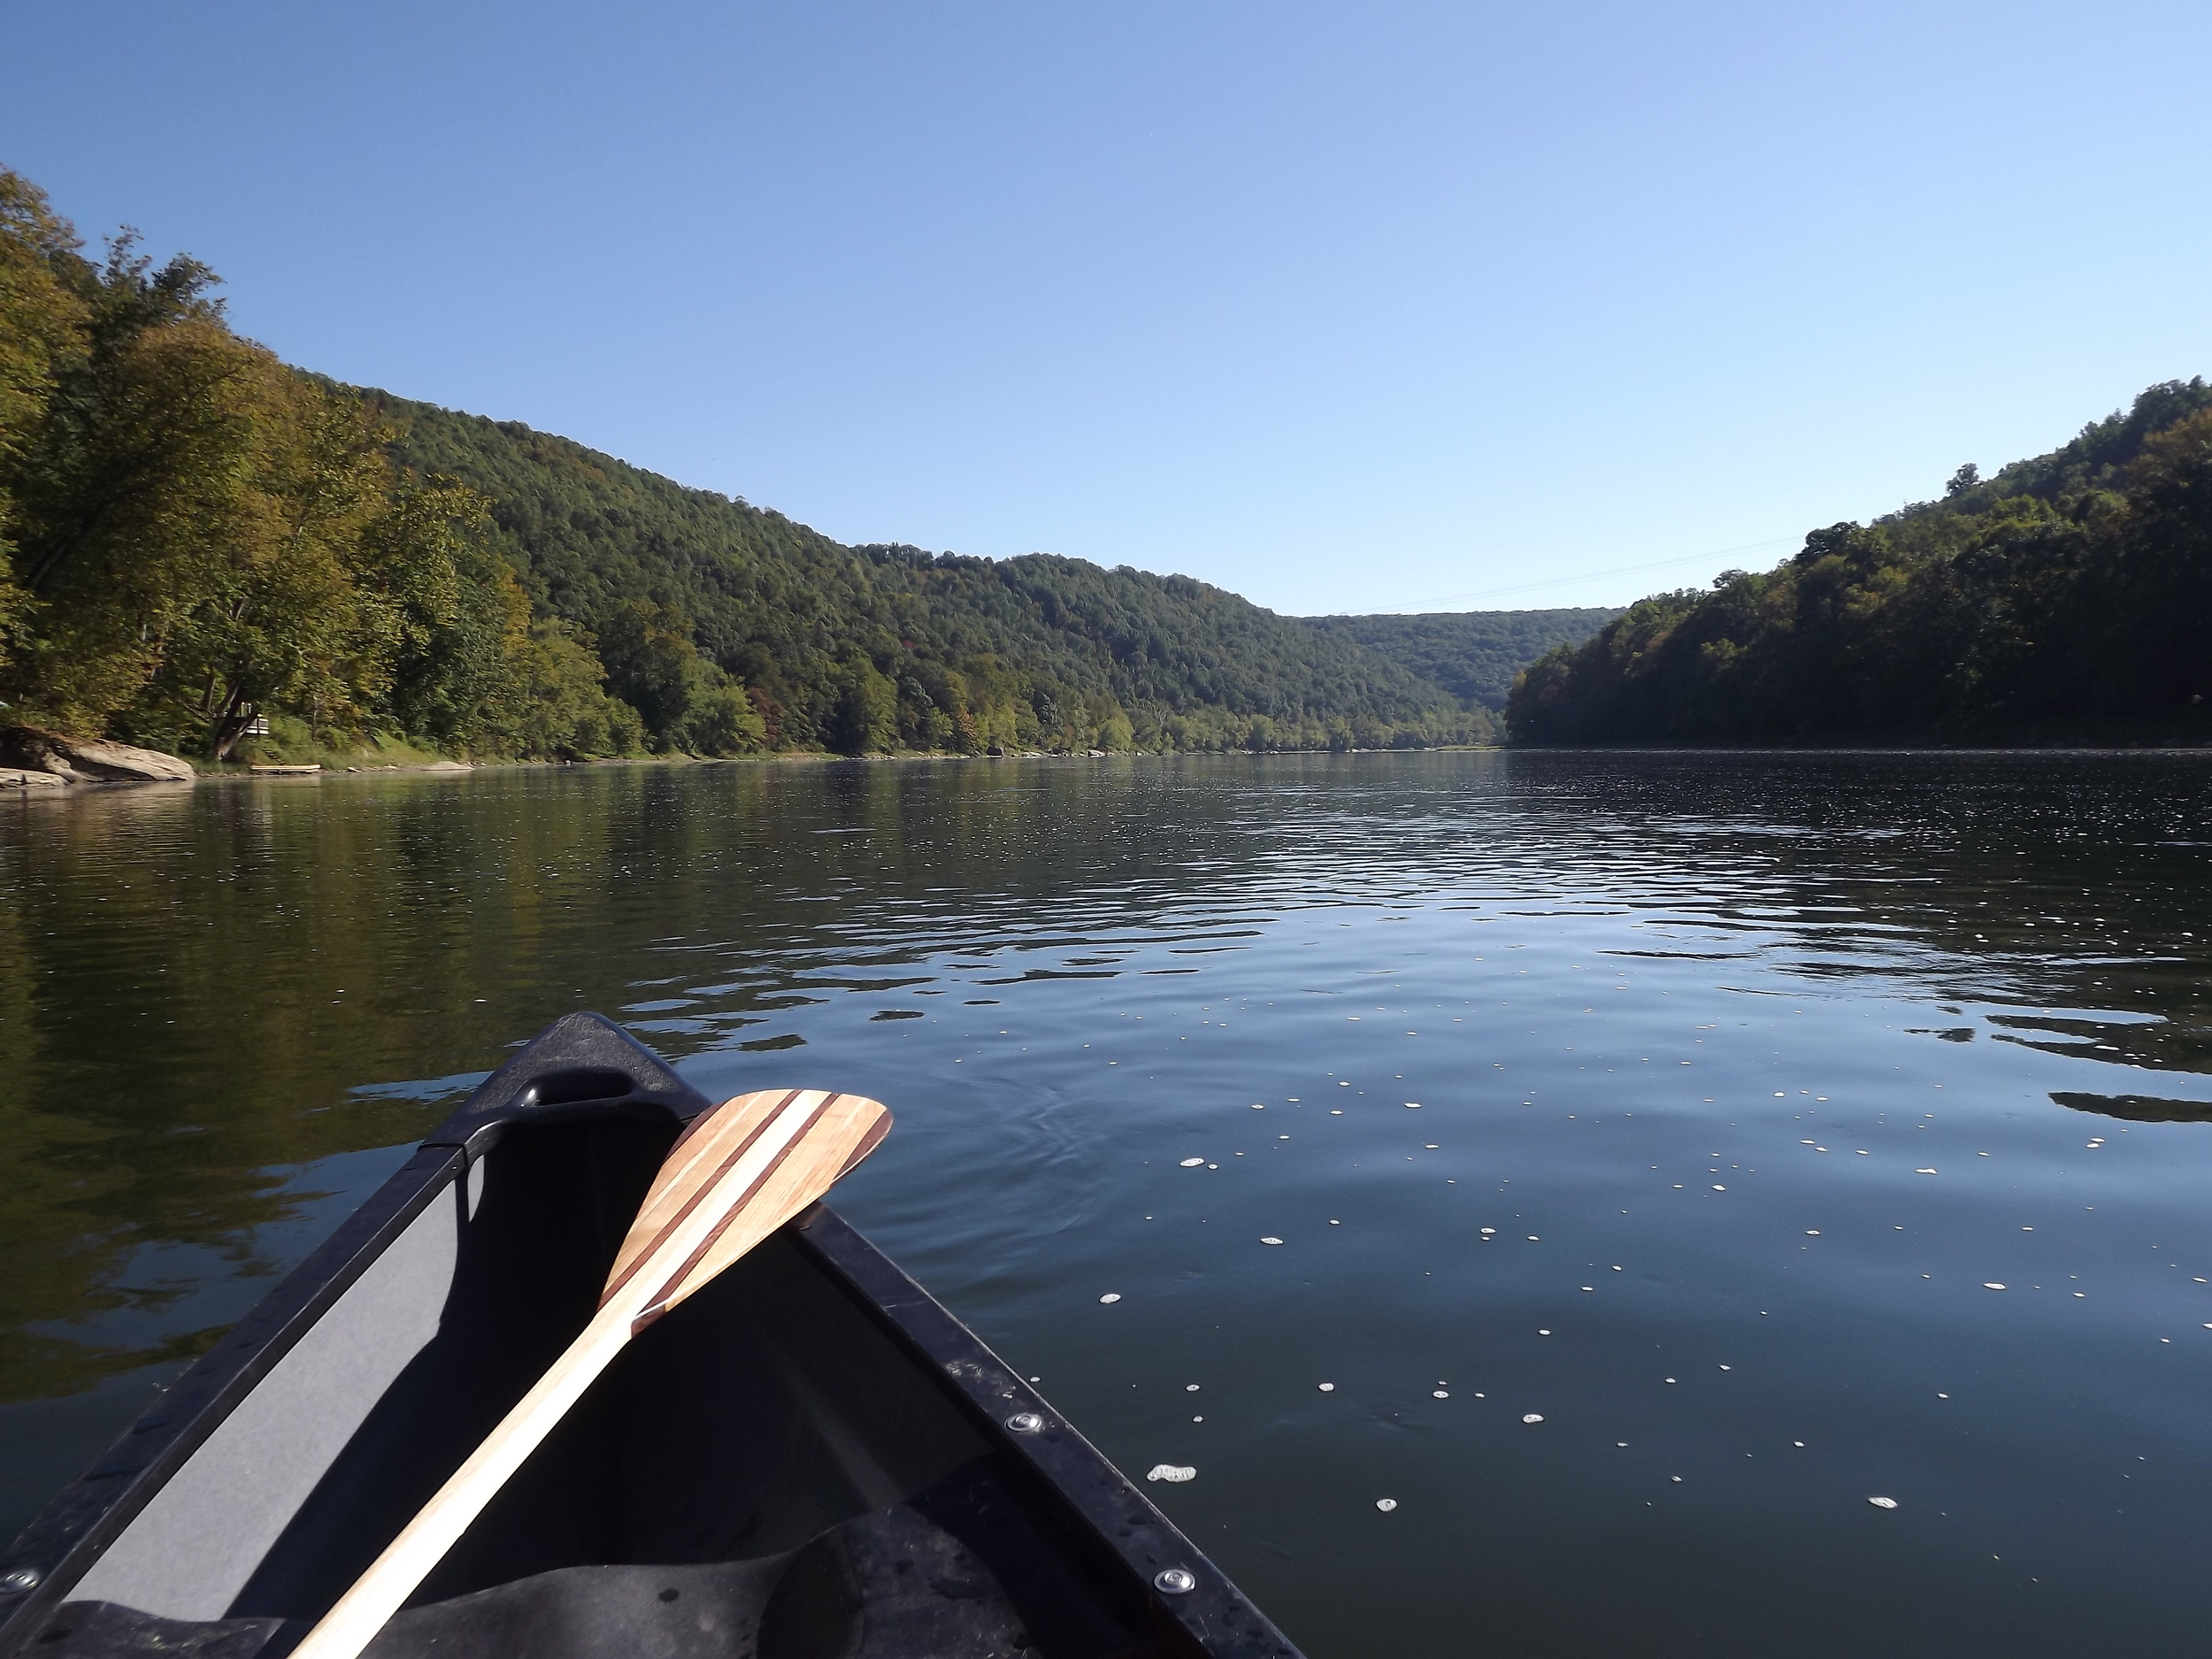 Allegheny River just after launching in Kennerdell